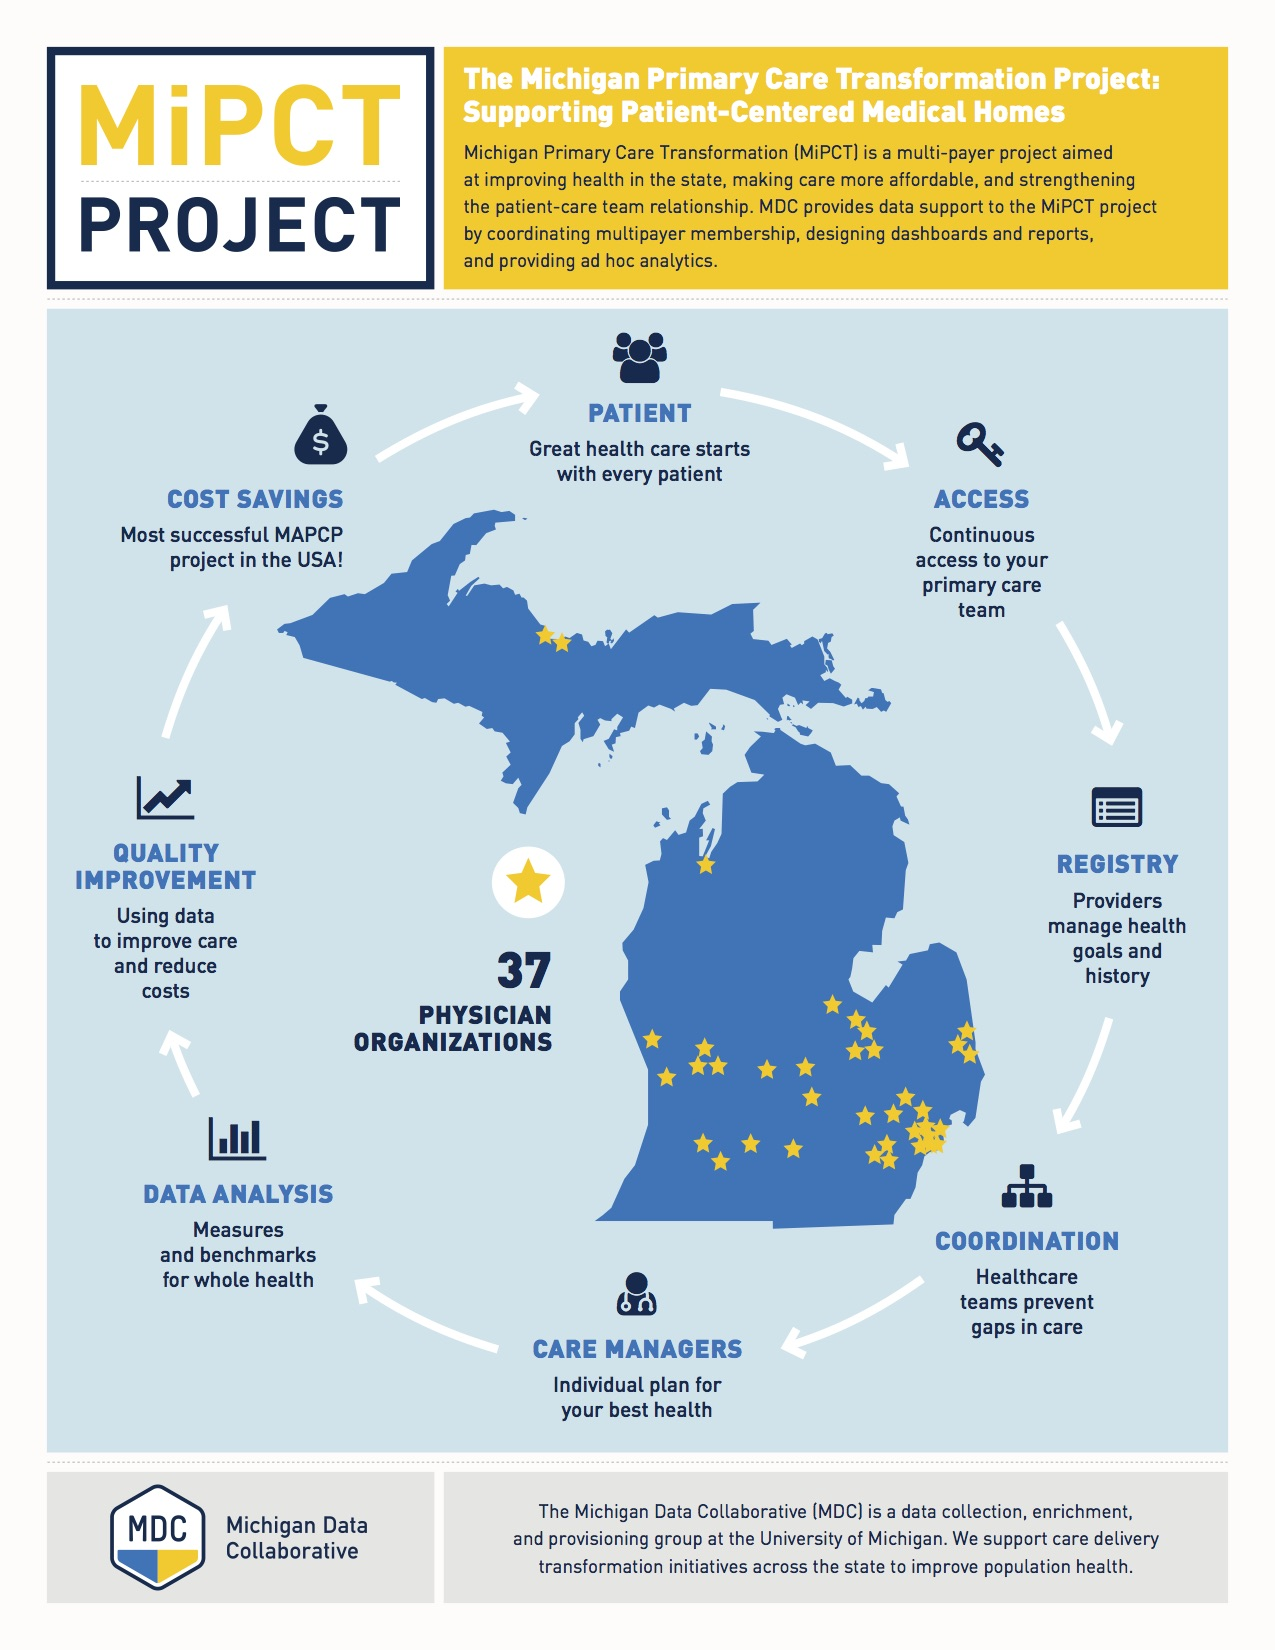 MiPCT infographic, provided by the Michigan Data Collaborative